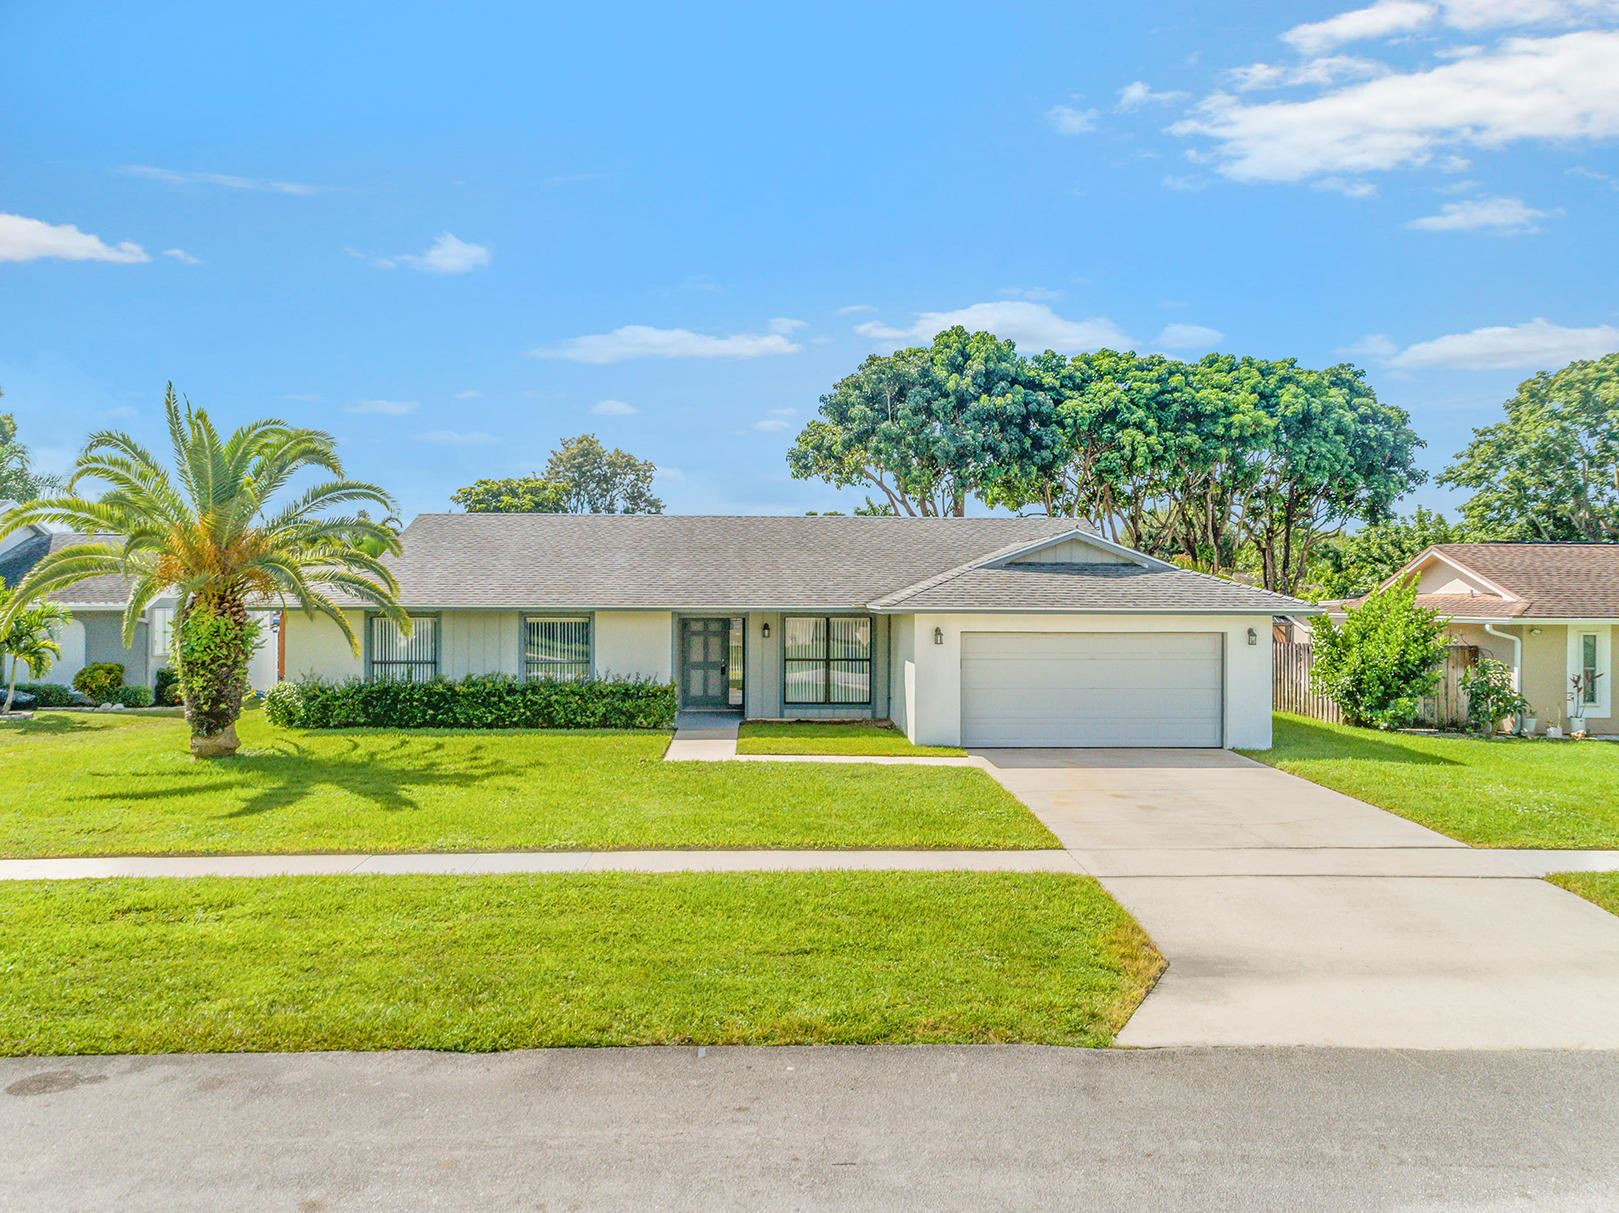 12176 Sugar Pine Trail, Wellington, FL 33414 - #: RX-10653880